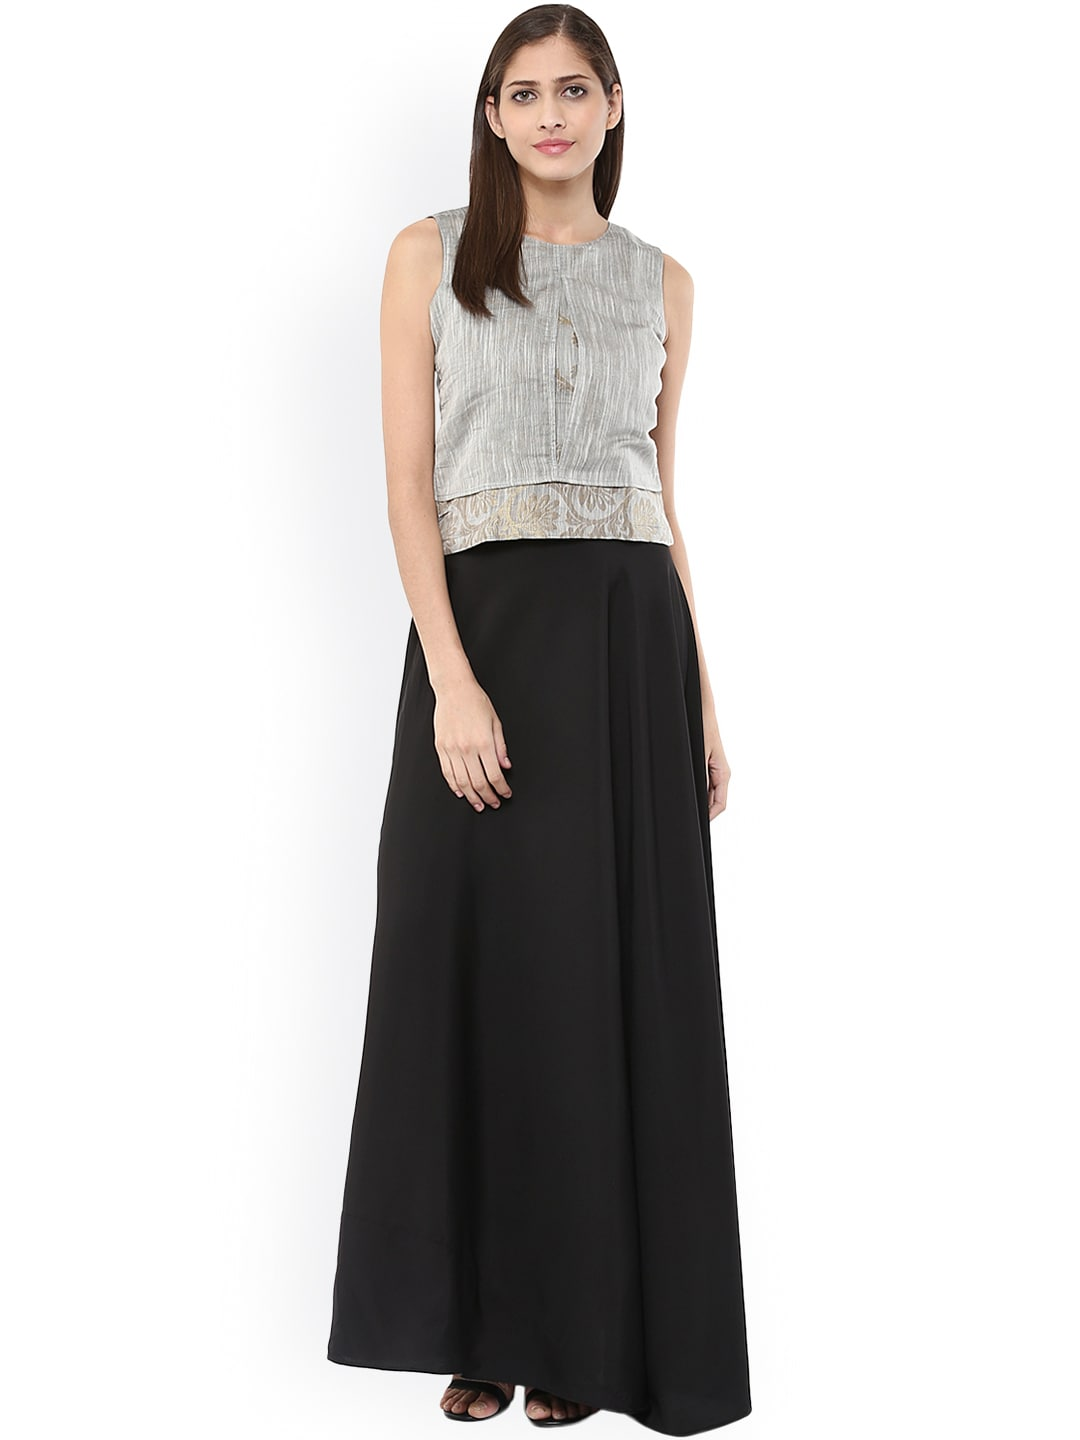 Skirts for Women - Buy Short, Mini & Long Skirts Online - Myntra